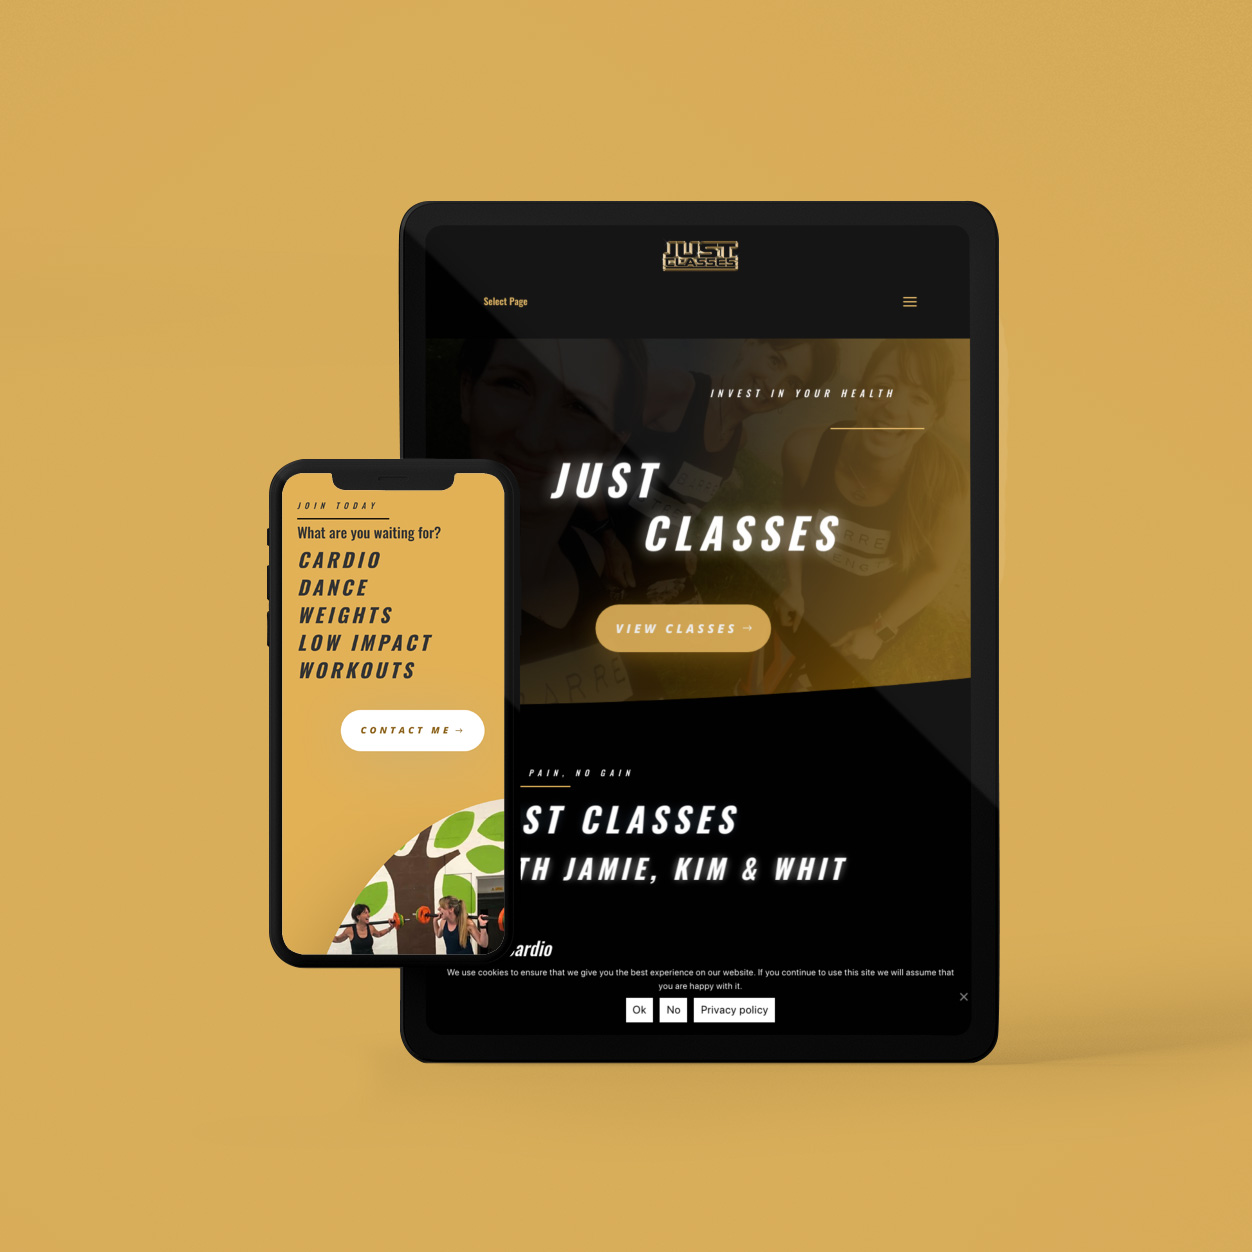 Just Classes website on multiple devices